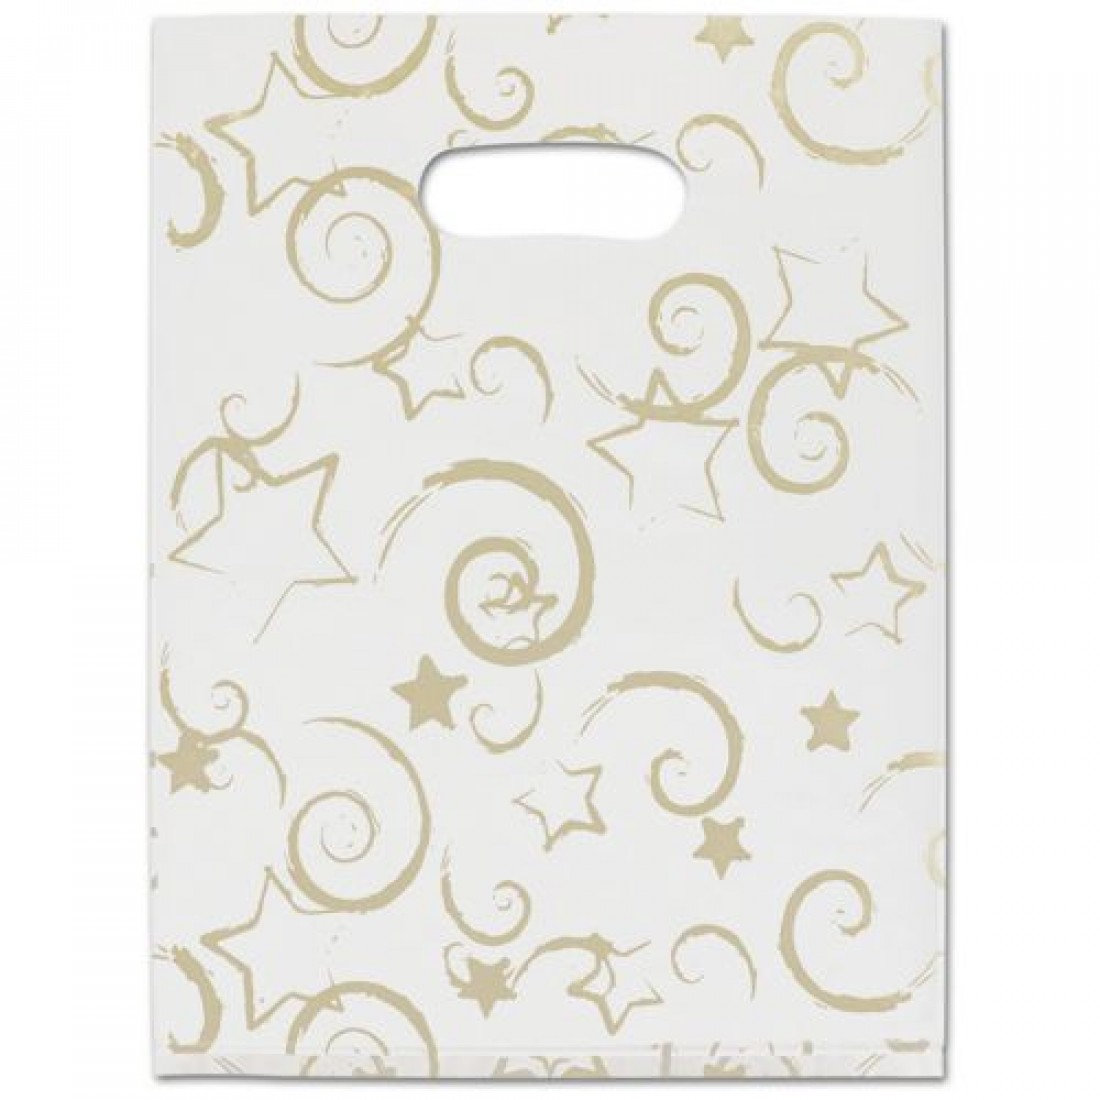 Stars Frosted Merch Bag 9x12